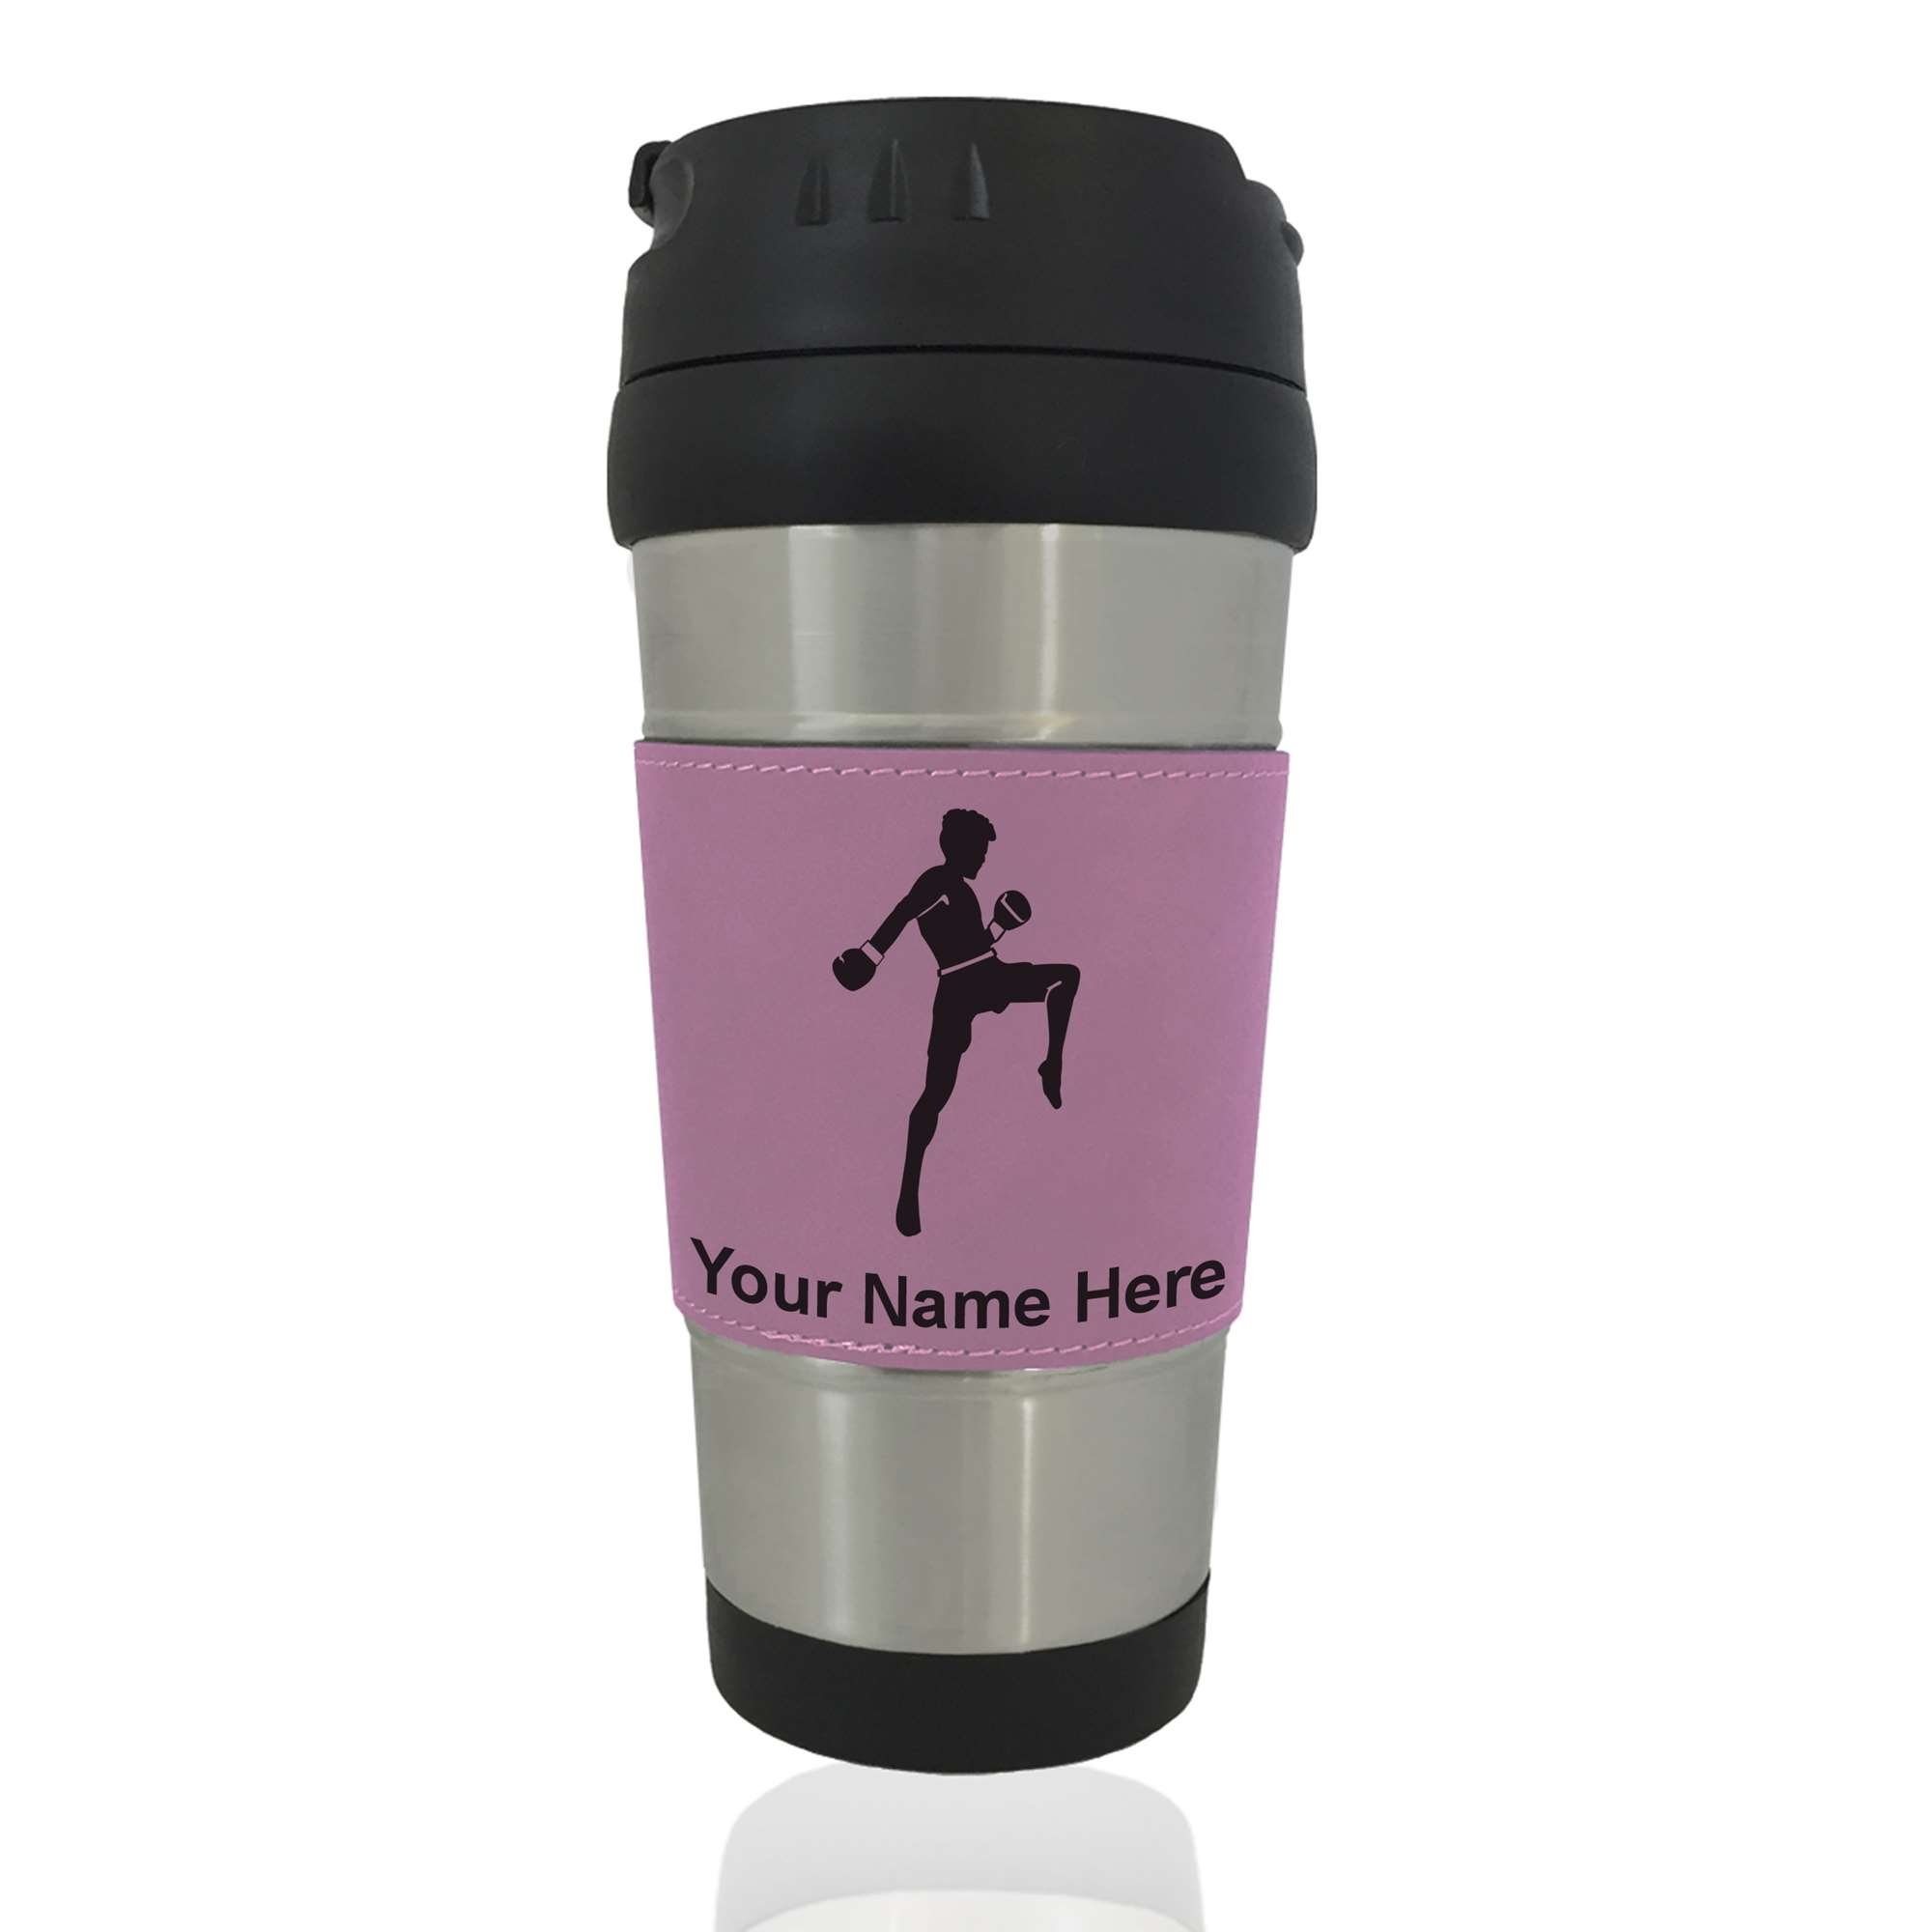 Travel Mug - Muay Thai Fighter - Personalized Engraving Included (Pink) by SkunkWerkz